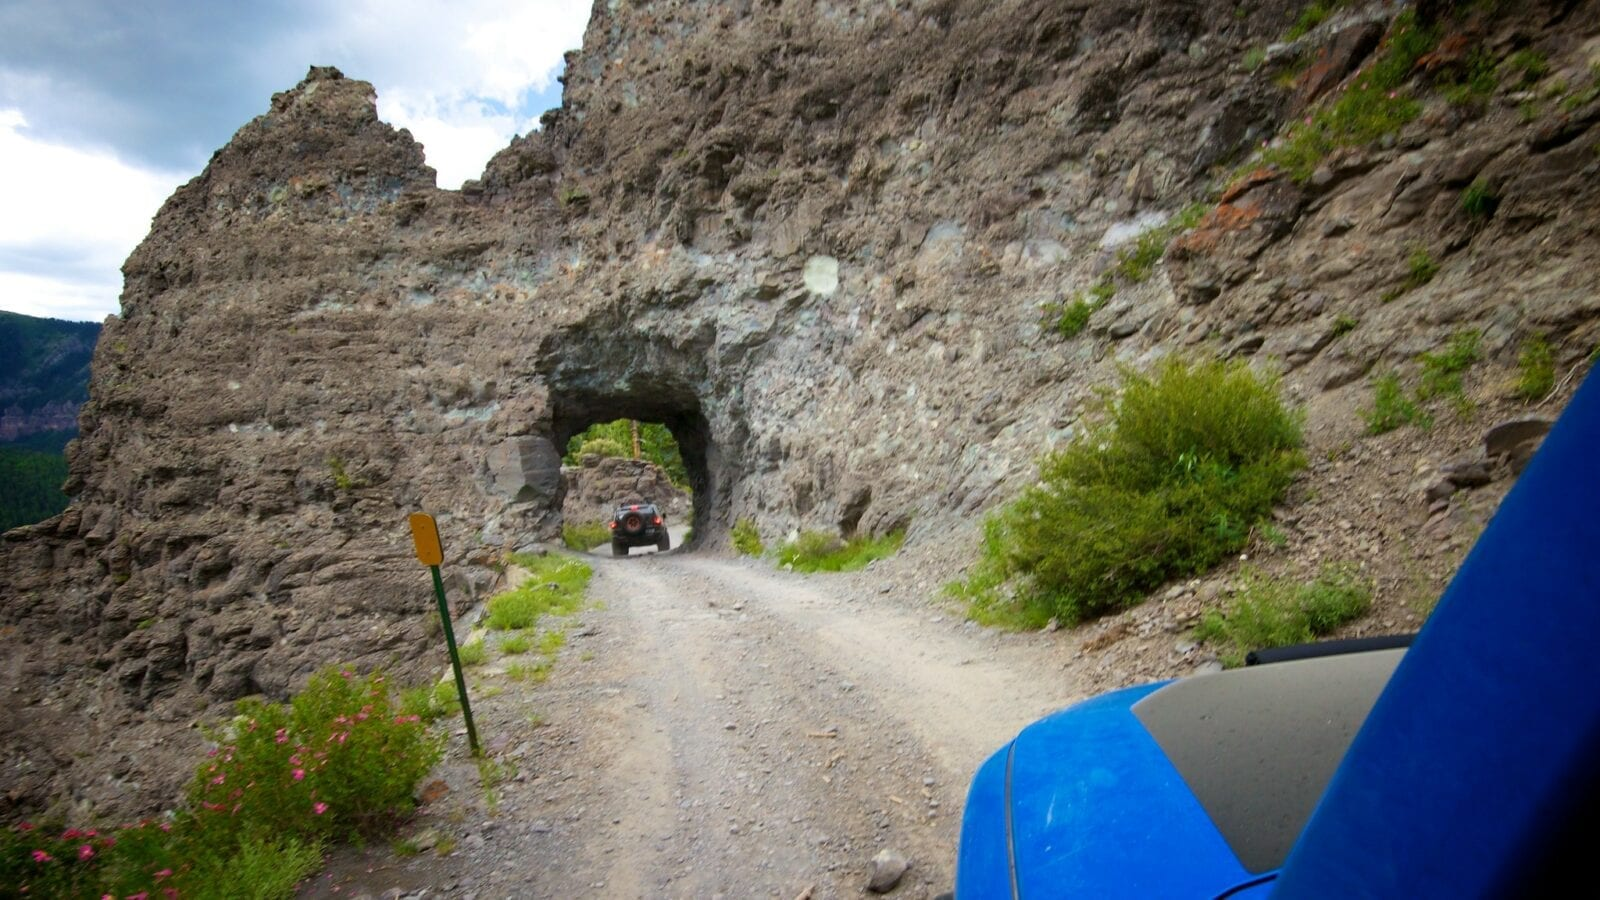 Image of a tunnel on the Imogene Pass in Colorado